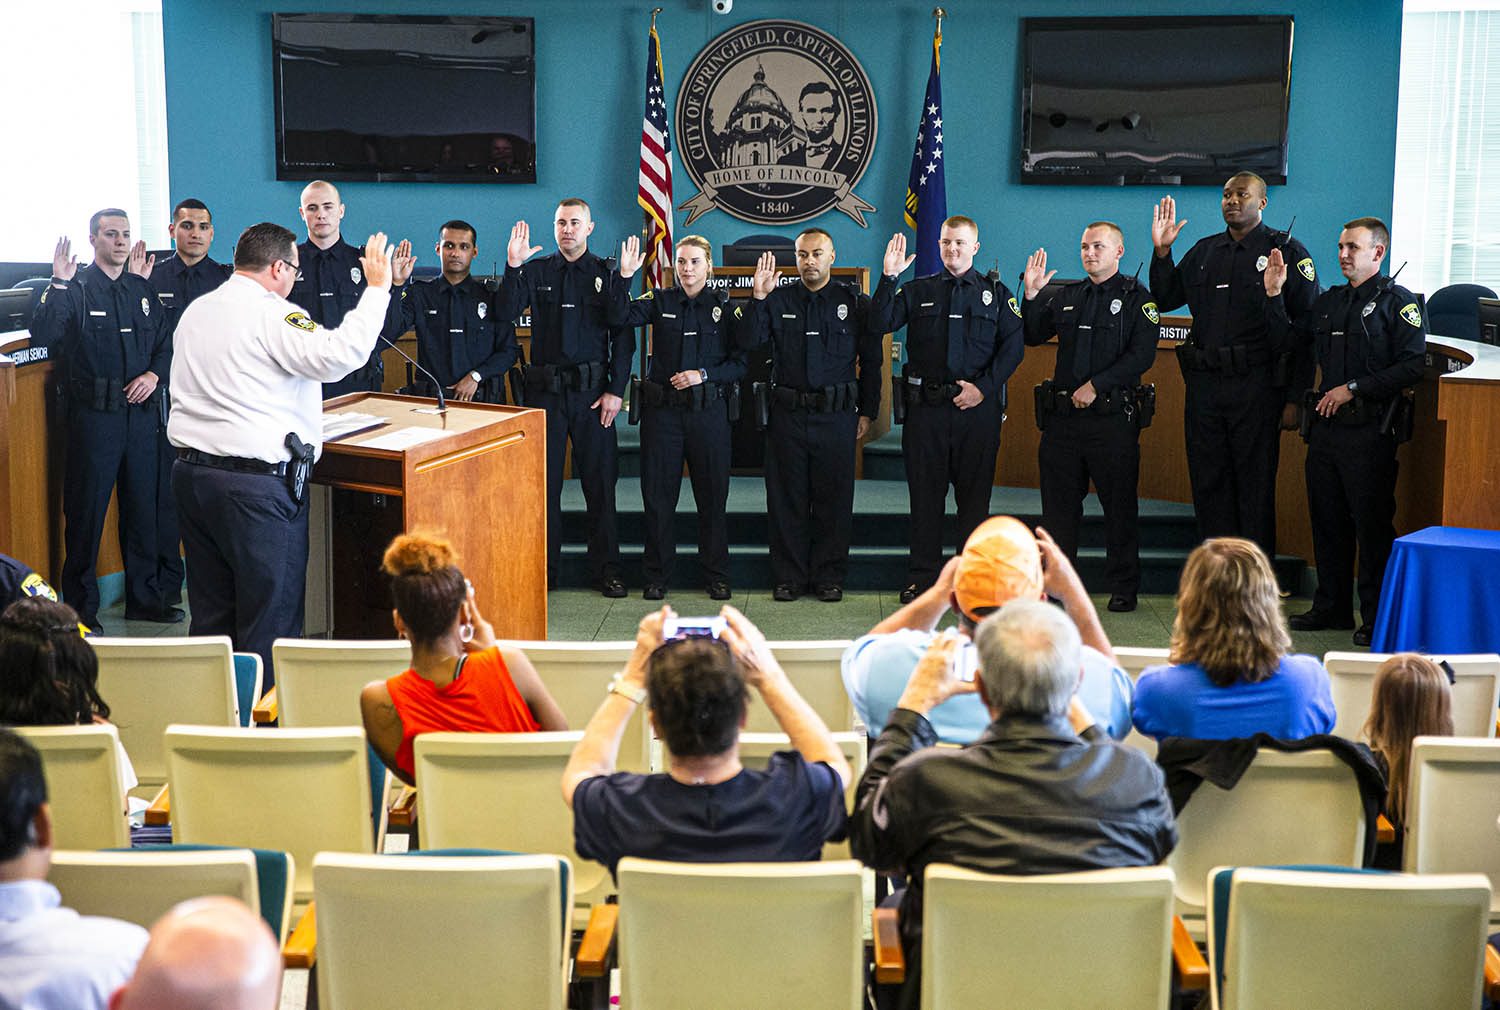 Eleven new officers are sworn in by Springfield Police Chief Kenny Winslow during a swearing-in and promotion ceremony for Springfield Police Officers in the City Council Chambers, Monday, May 20, 2019, in Springfield, Ill. [Justin L. Fowler/The State Journal-Register]